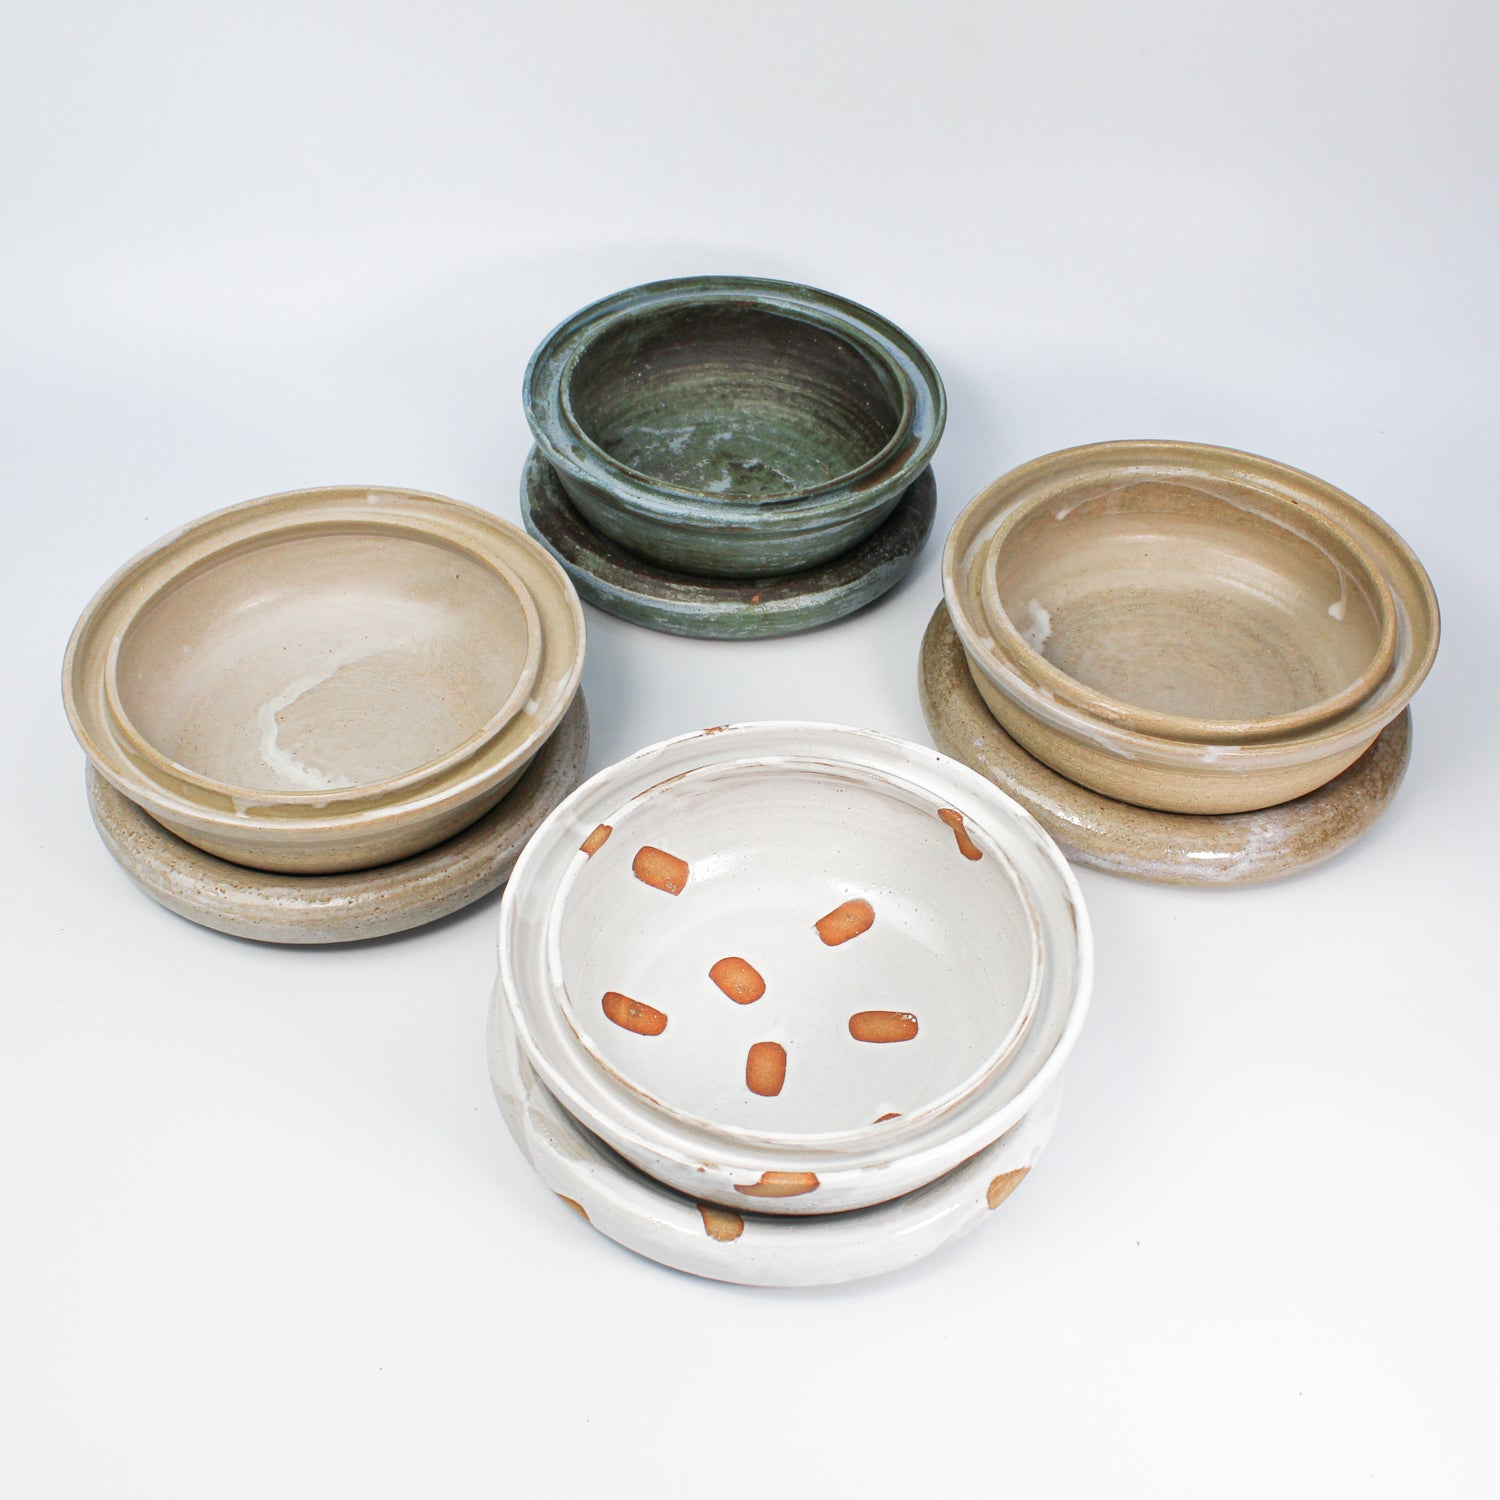 Set of four pottery dog food and water bowls. One in blue, one in natural gloss, one in natural matt and one in white spotted.